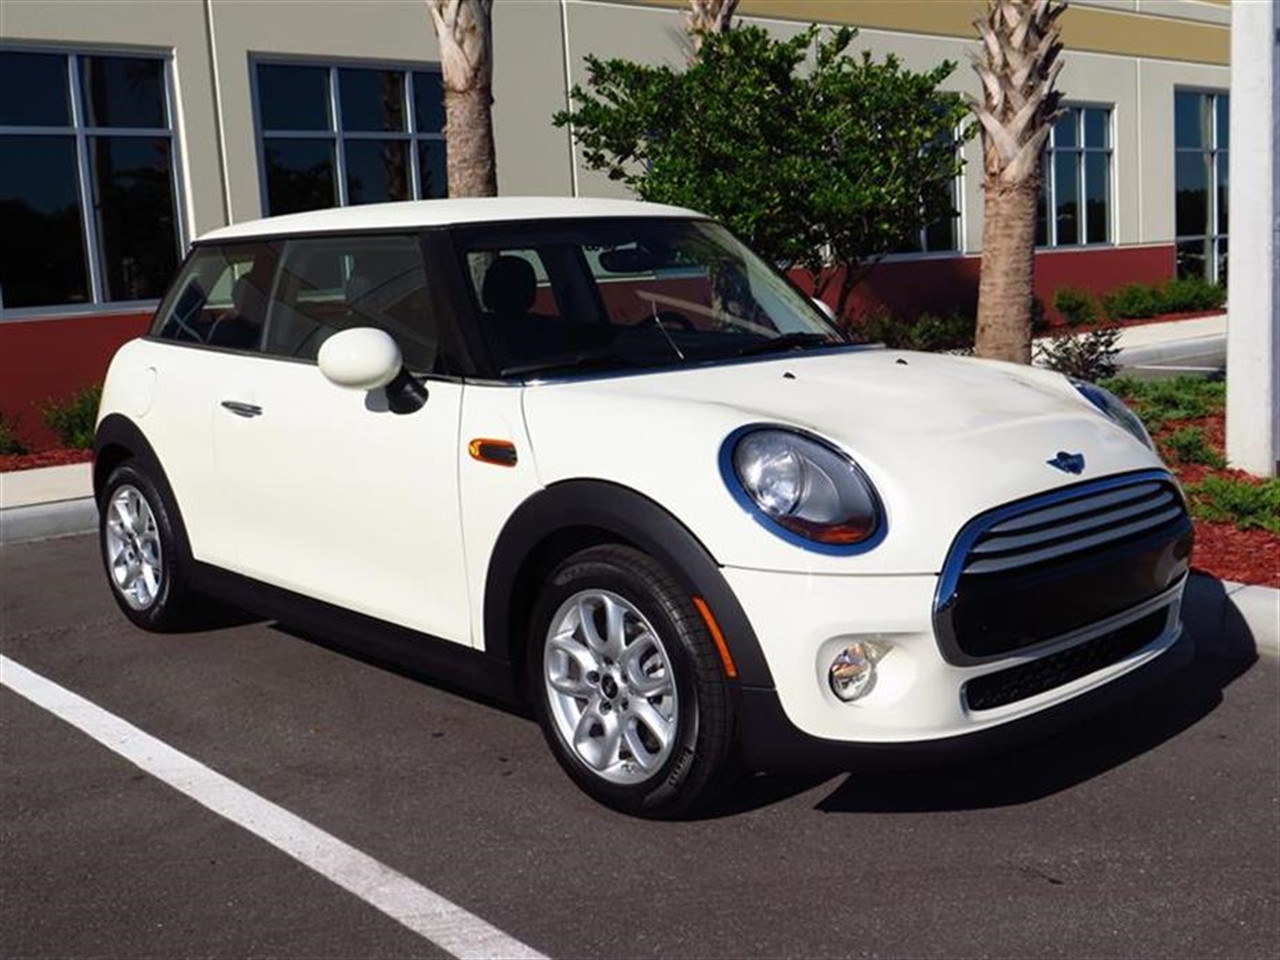 2015 MINI COOPER HARDTOP 2dr Cpe 5 miles 1 12V DC Power Outlet 2 Seatback Storage Pockets 4 Pers